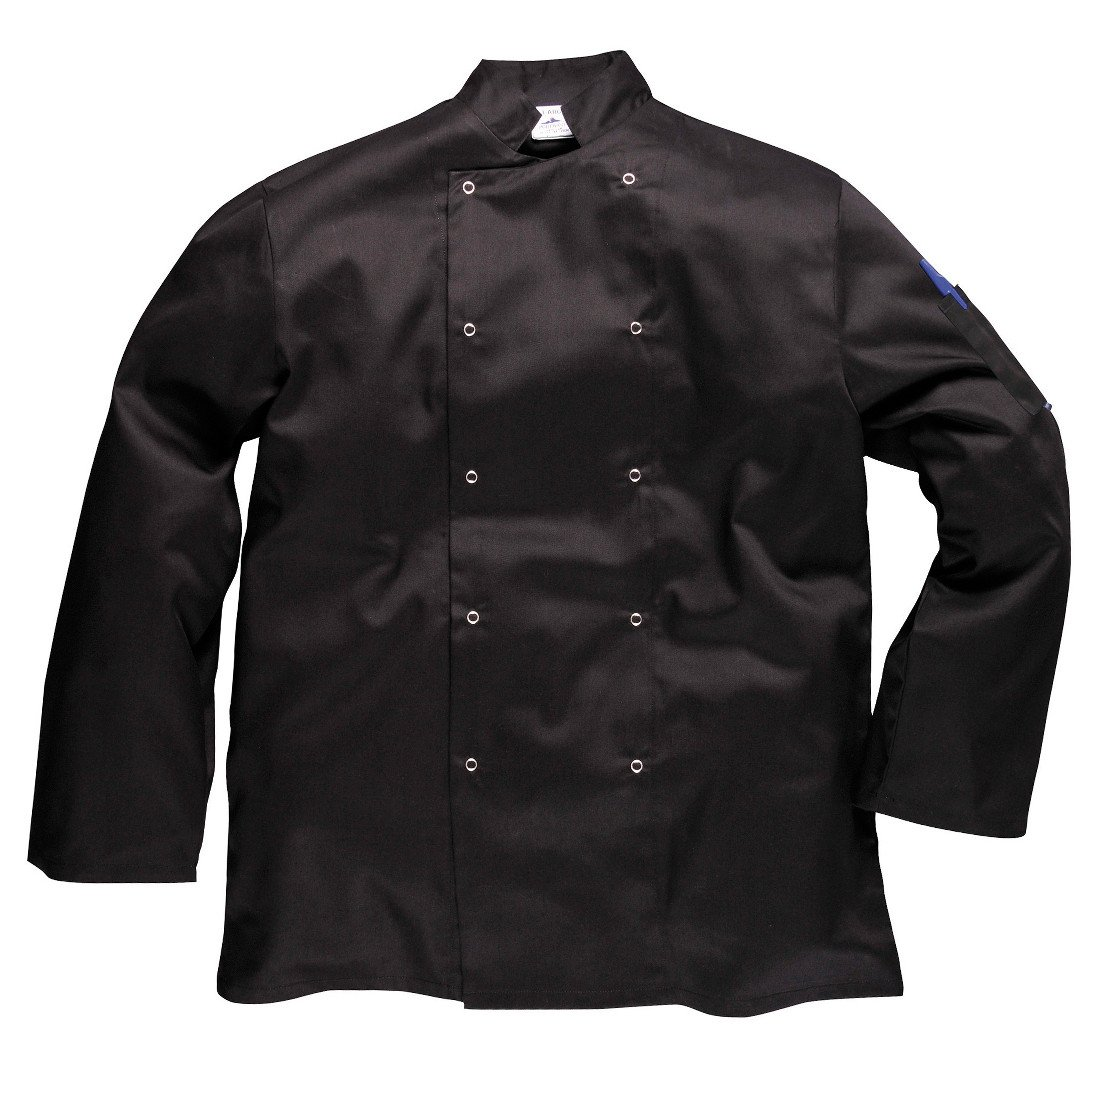 Portwest C833WHRXXXL Suffolk Chefs Jacket, Regular, 3X-Large, White Portwest Clothing Ltd